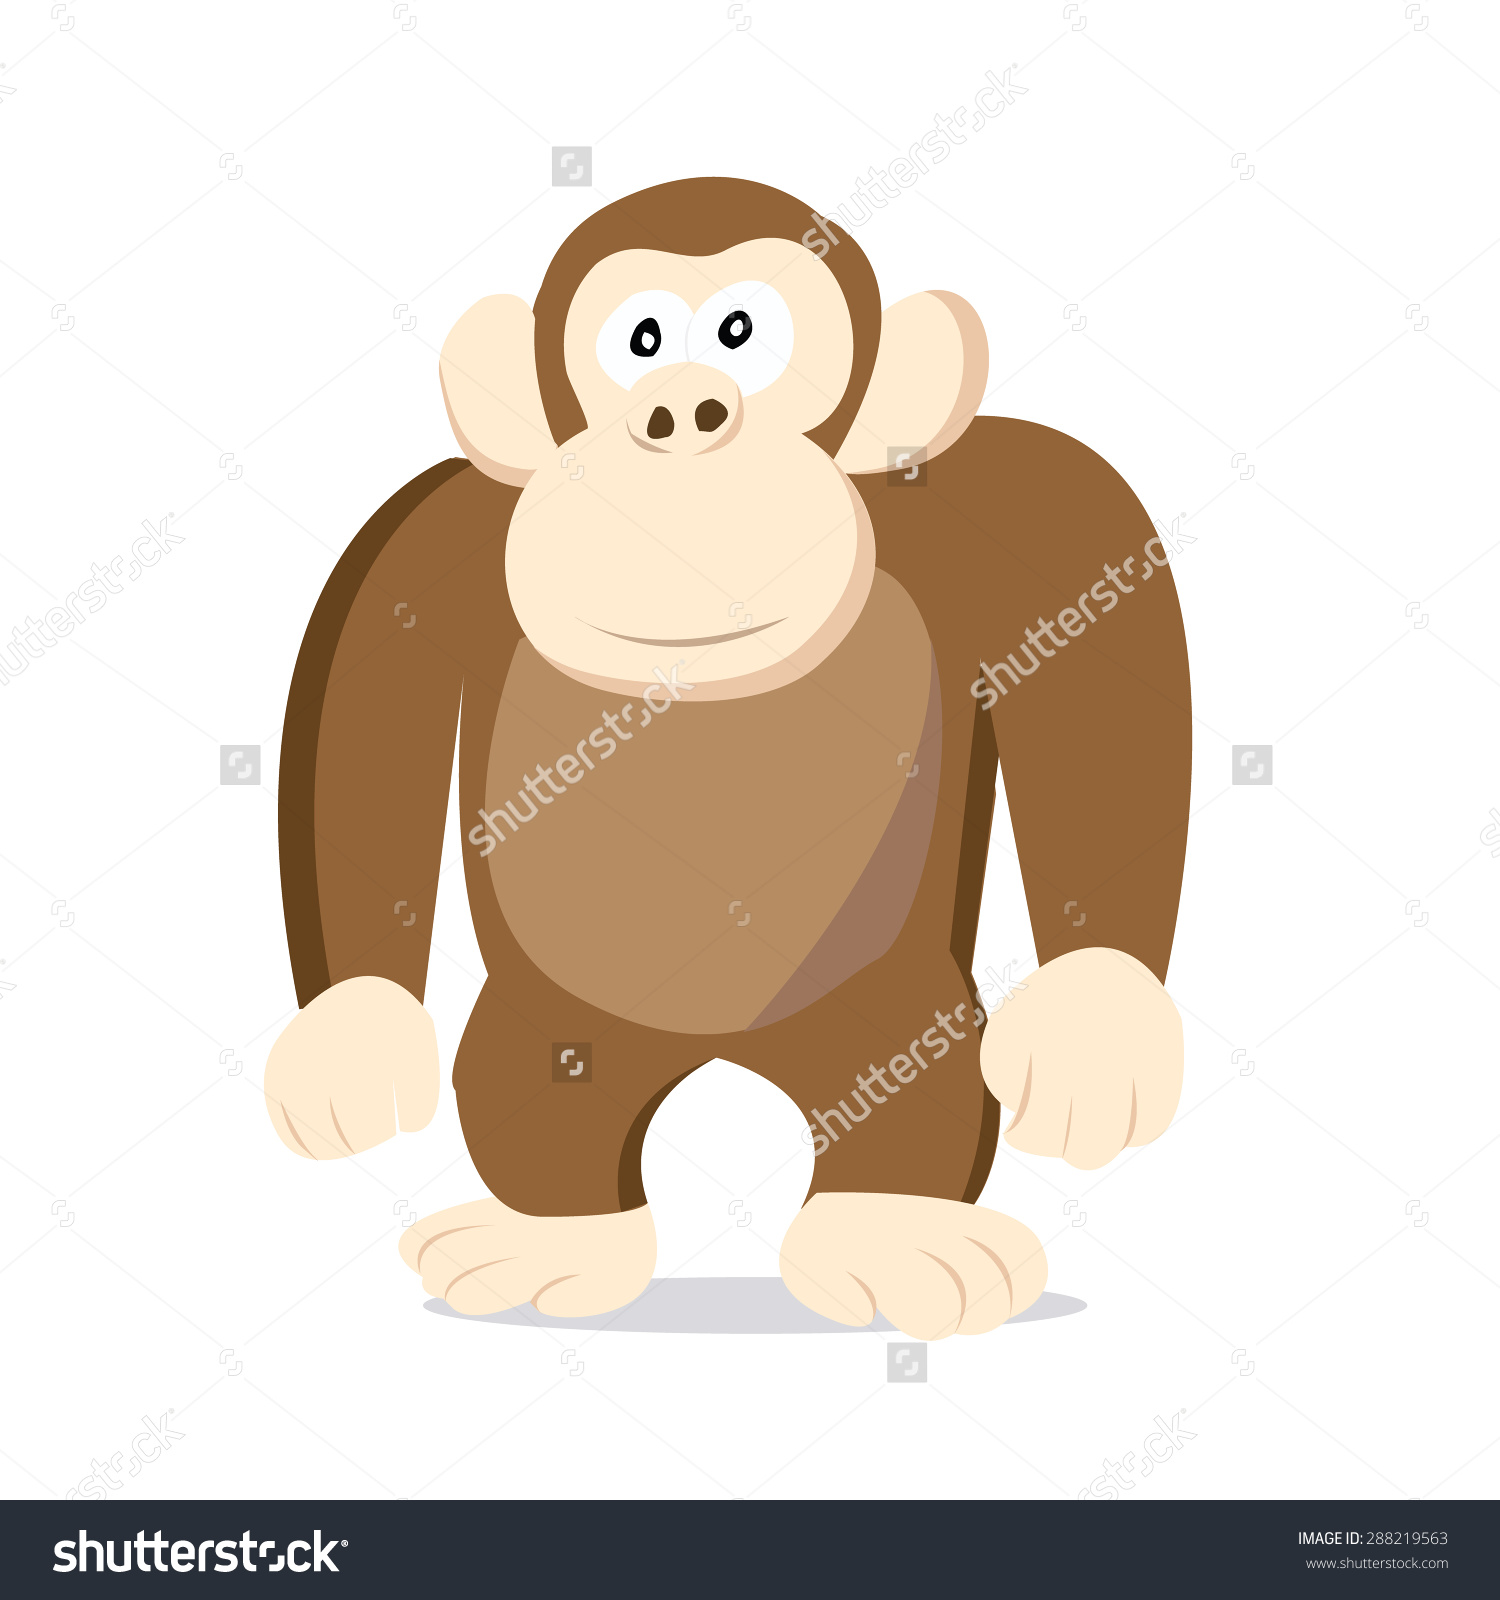 Stoned Looking Cartoon Brown Monkey Vector Stock Vector 288219563.